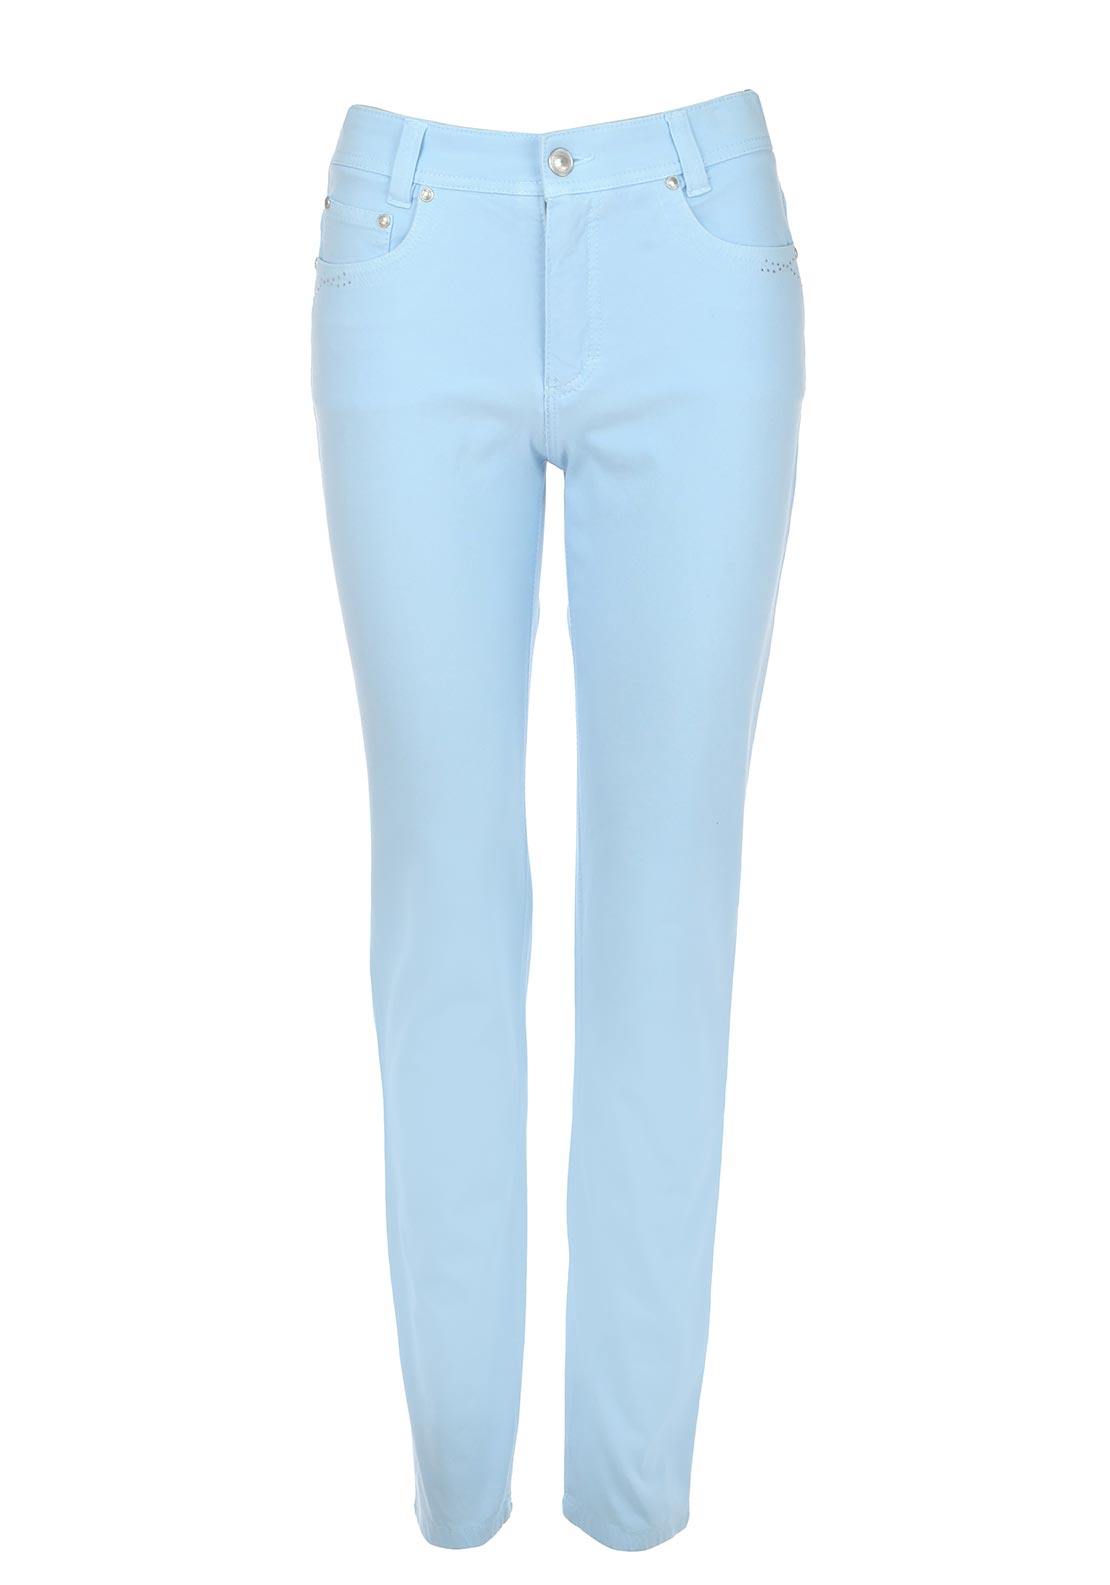 Anna Montana Angelika Magic Stretch Slim Leg Jeans, Blue